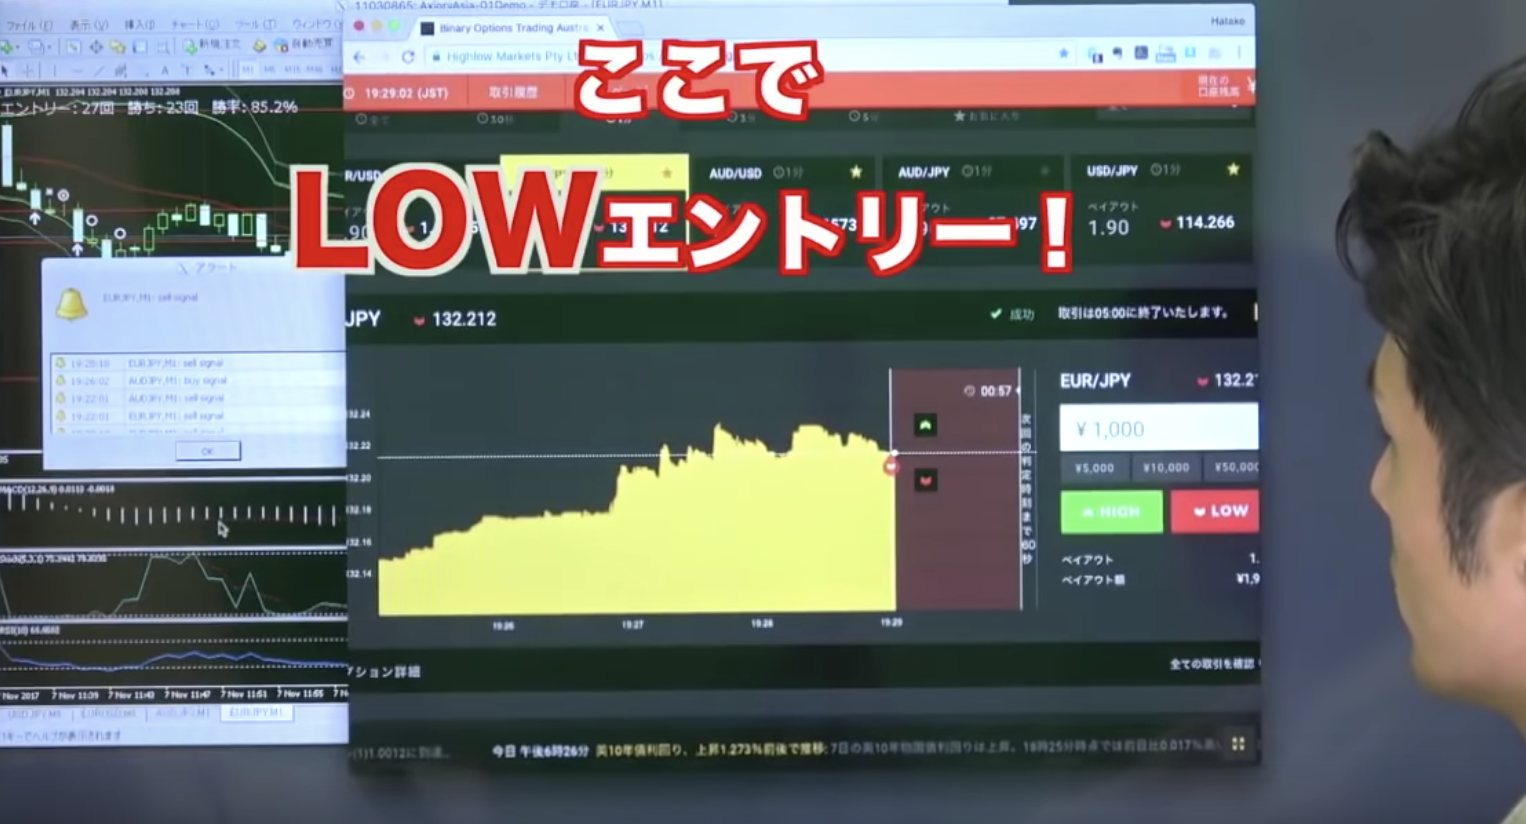 W(ダブル)ヒゲ EUR/JPY LOWエントリー1